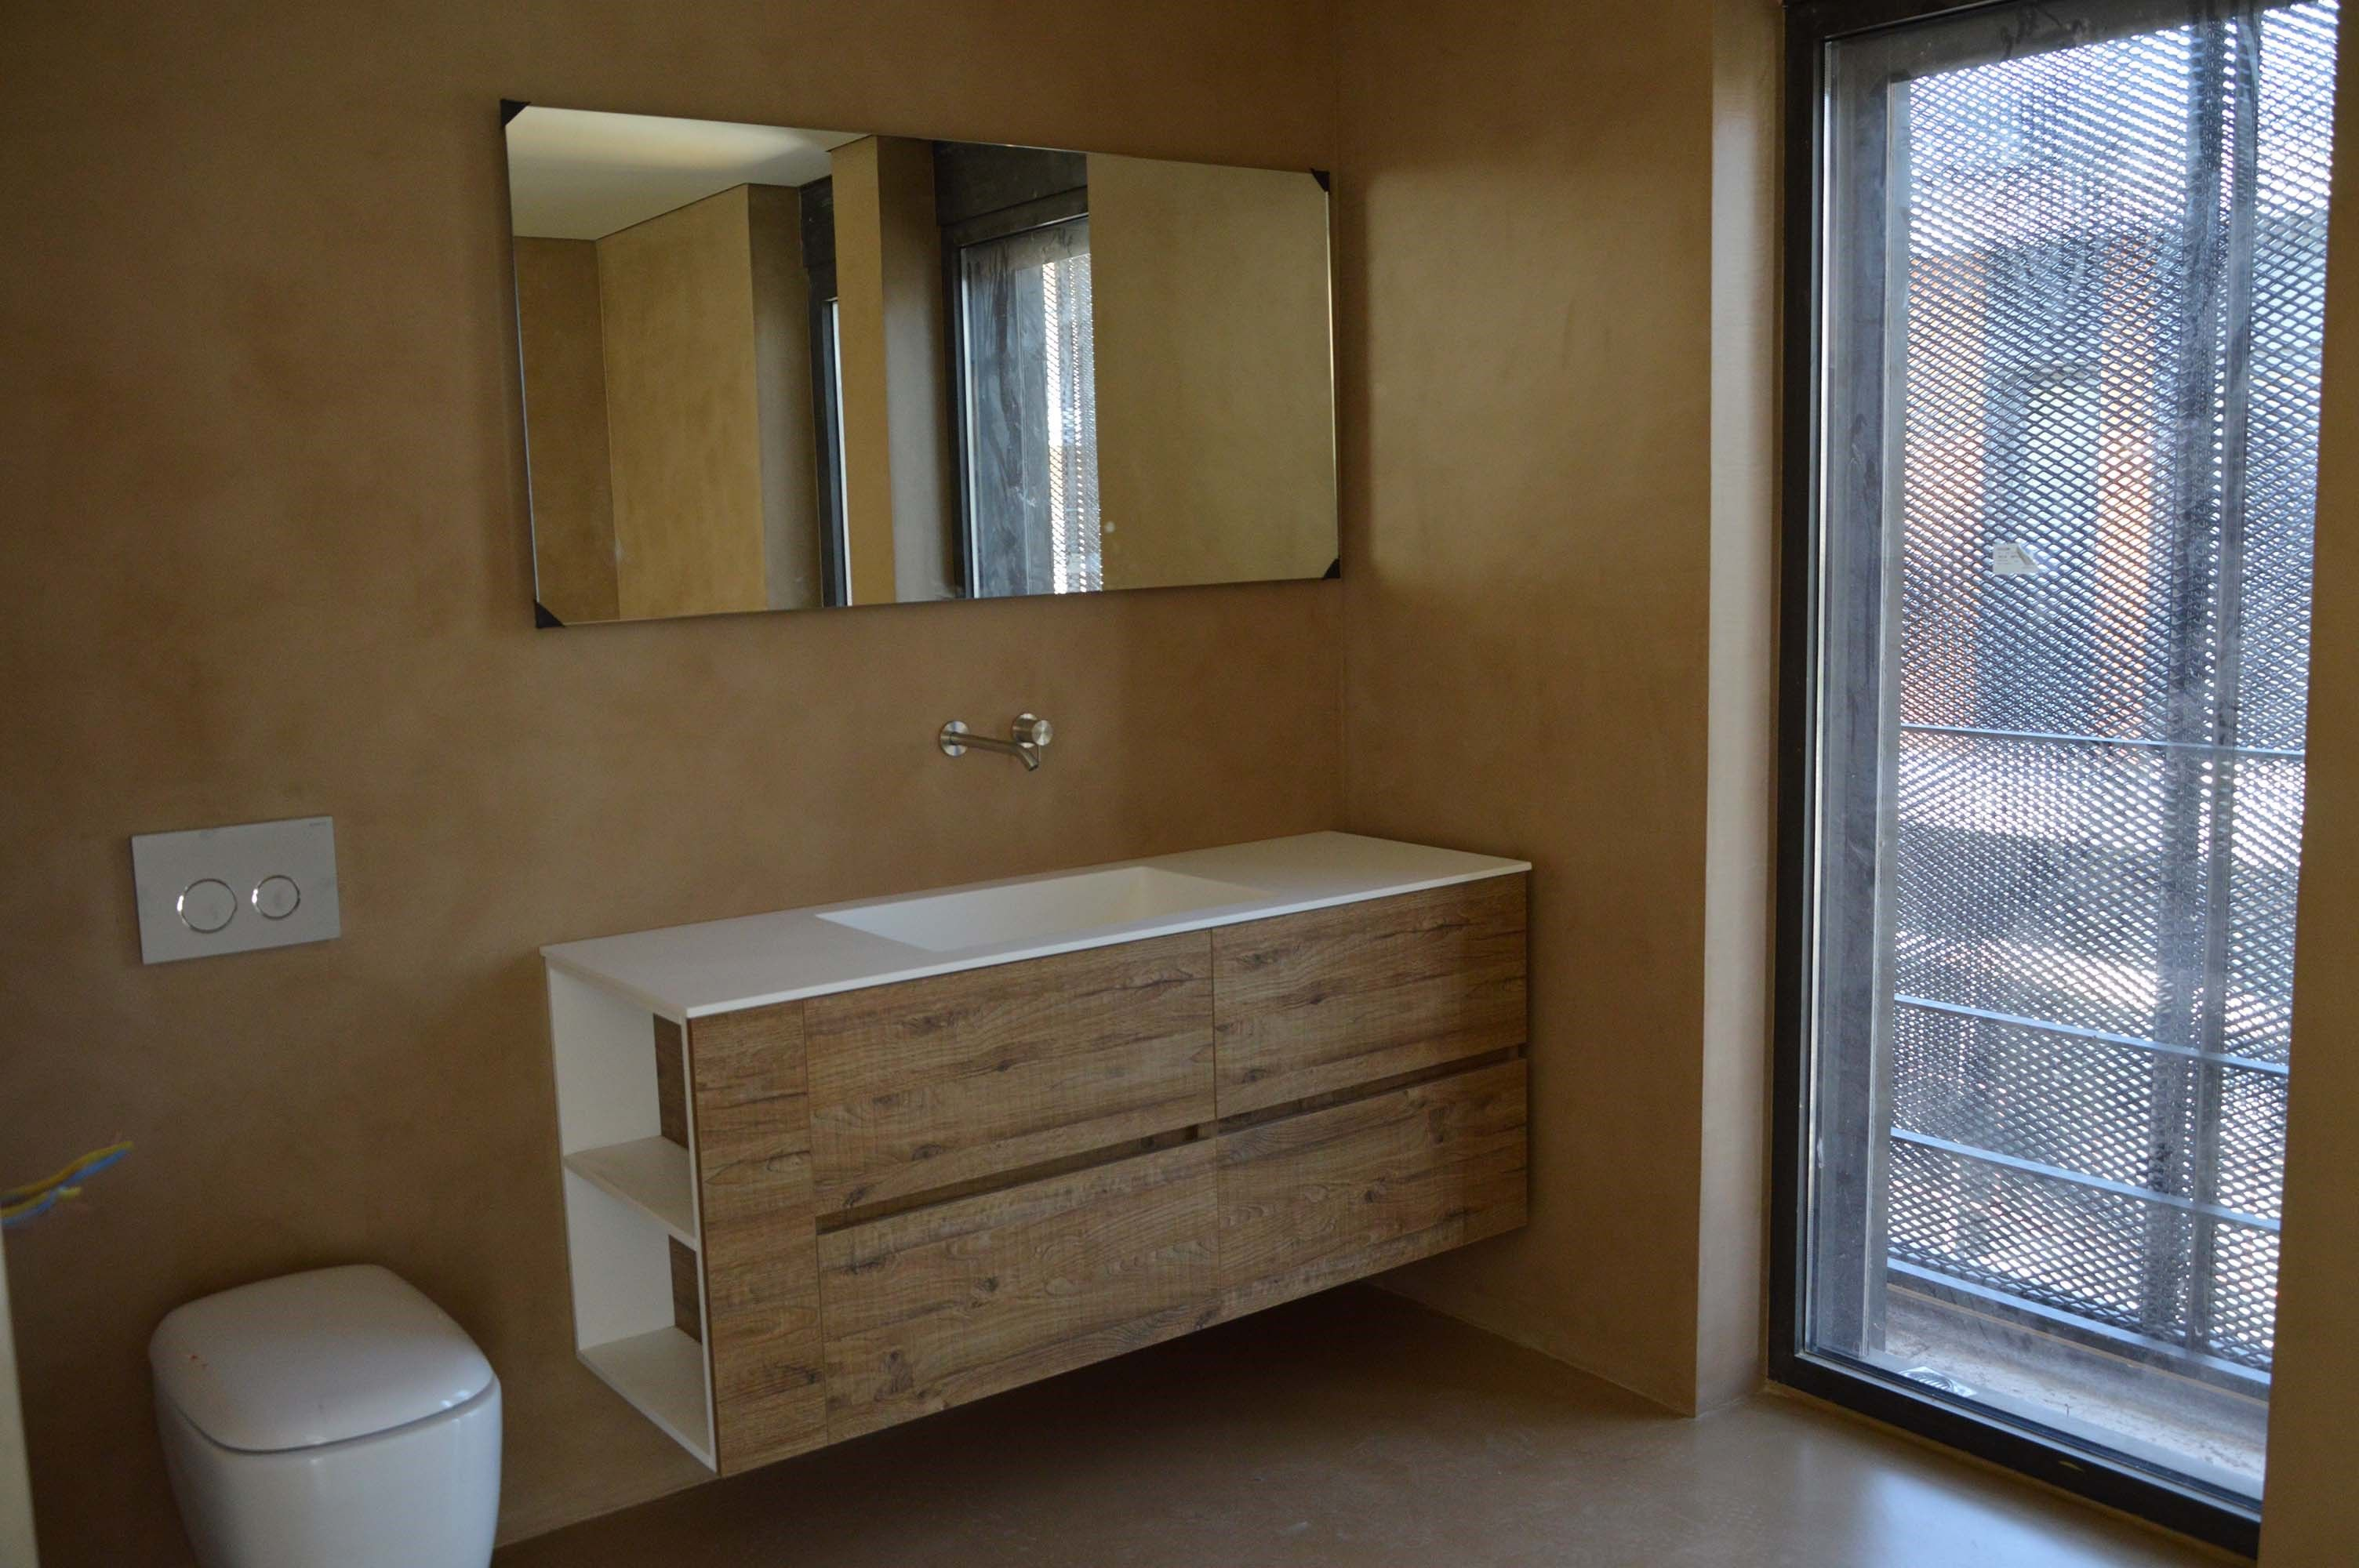 sherwood s072 by novel bathroom furniture | finished products ...